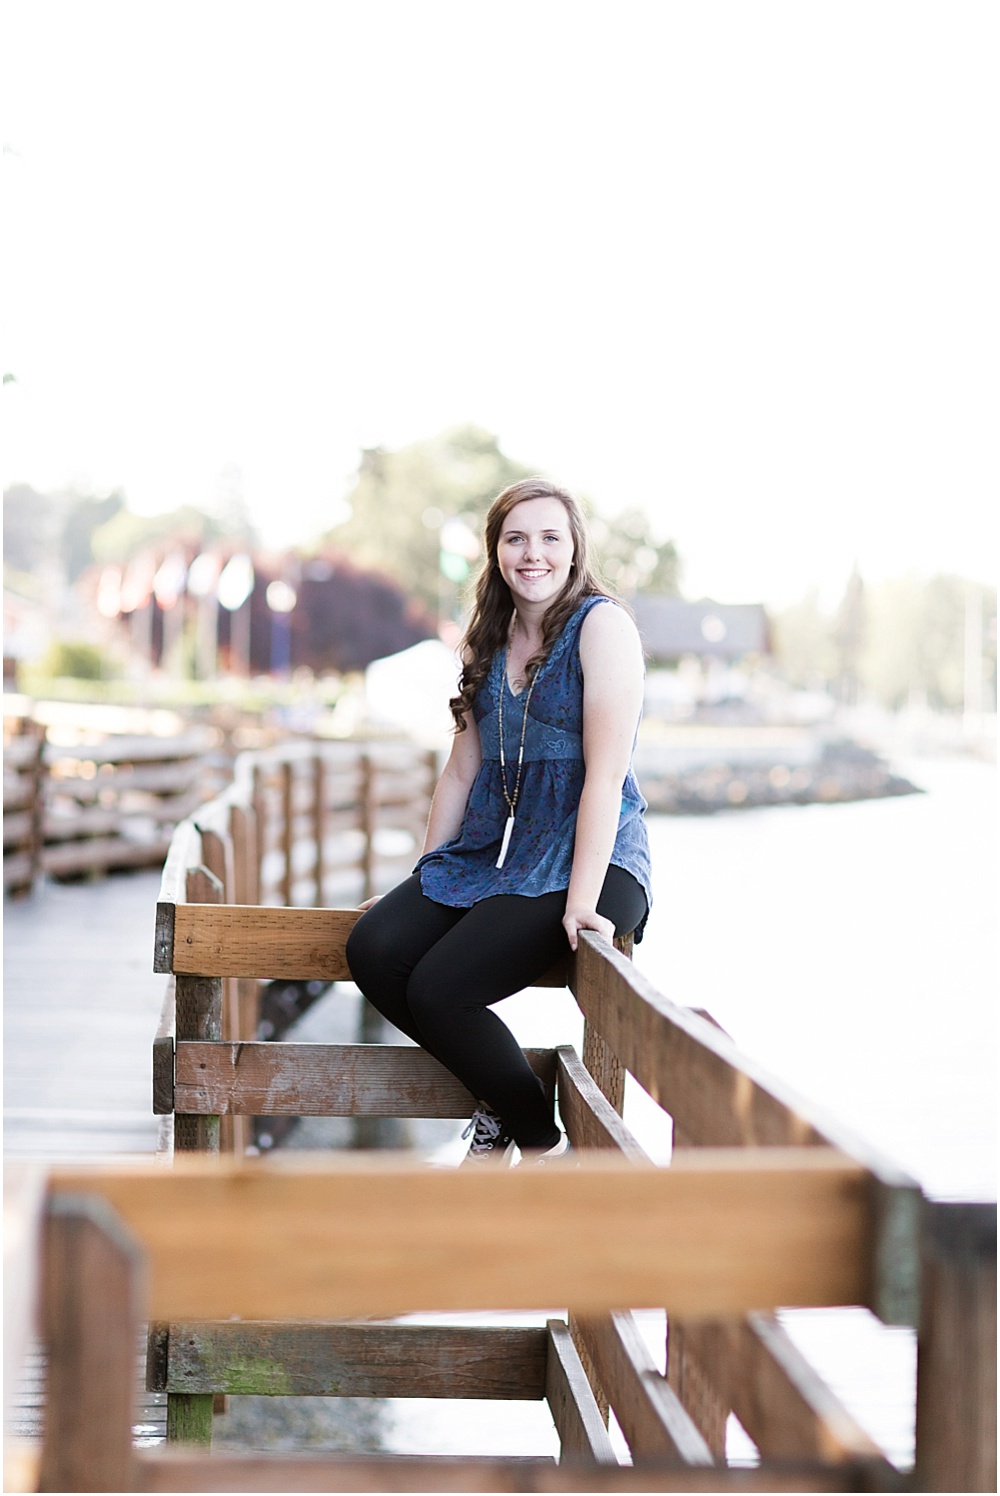 jessica_senior_portraits_downtown_poulsbo_pacific_northwest_photographer_0006